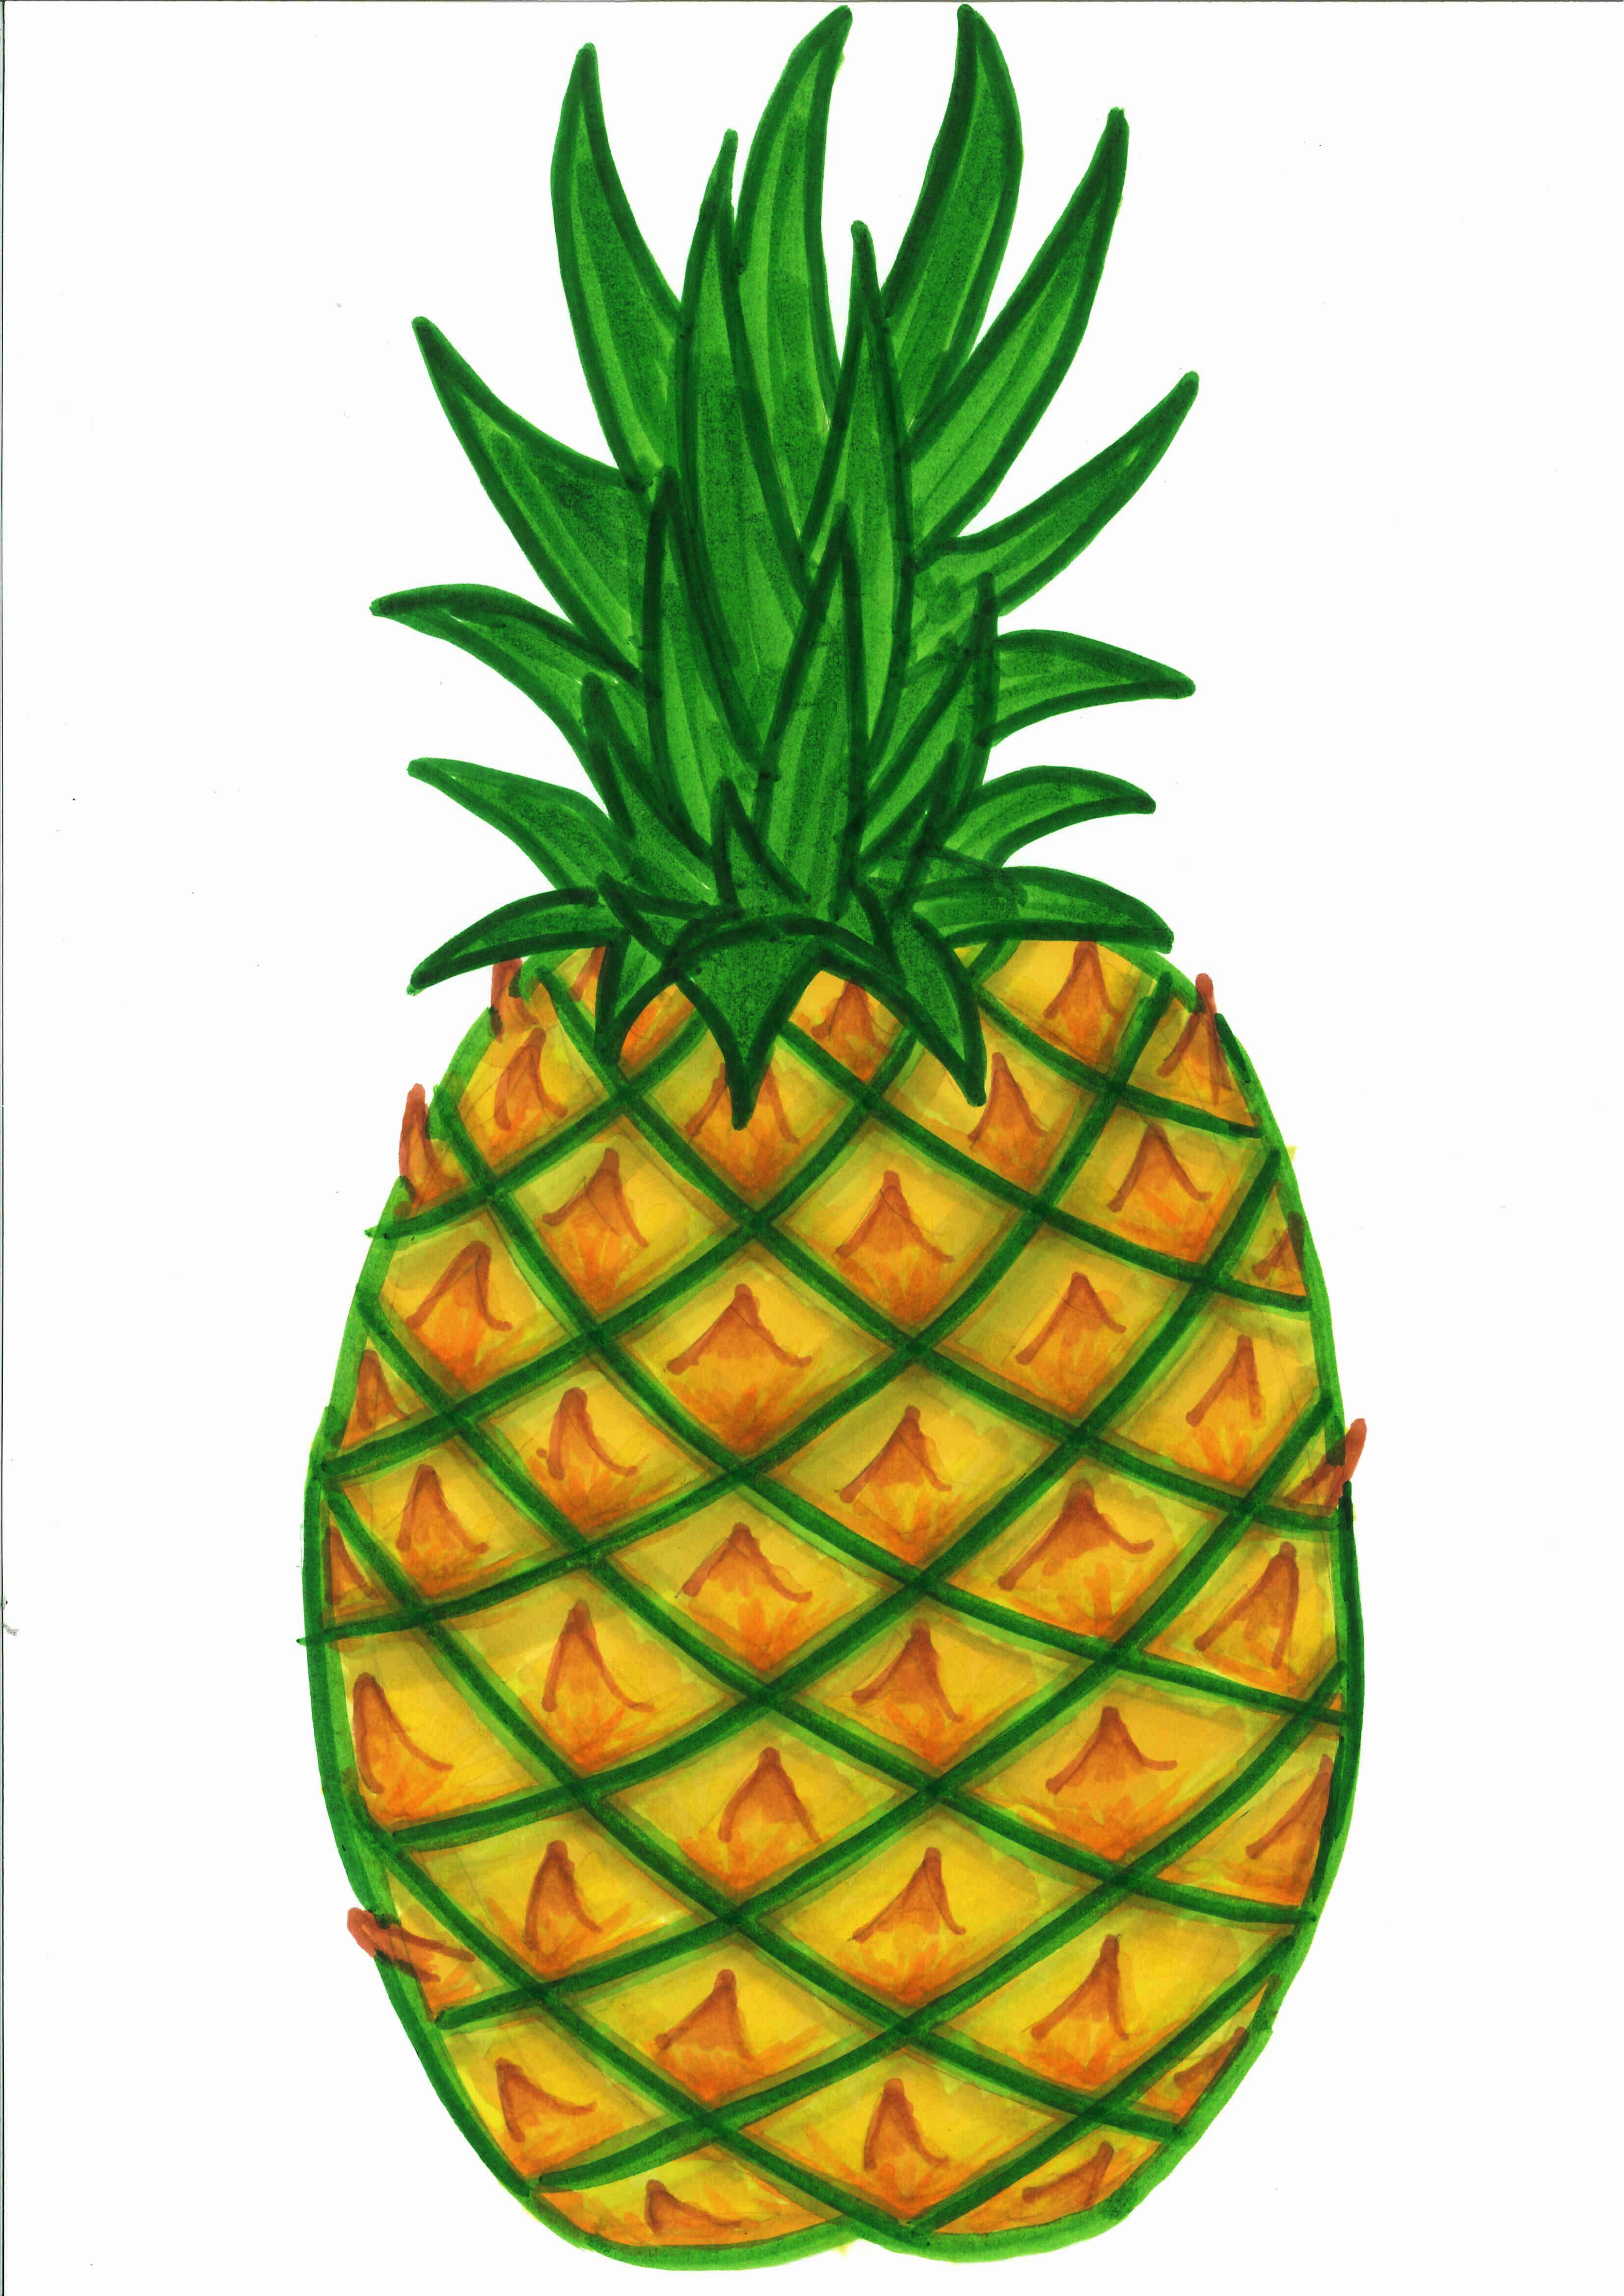 Pinya clipart picture freeuse Atis clipart 12 » Clipart Station picture freeuse